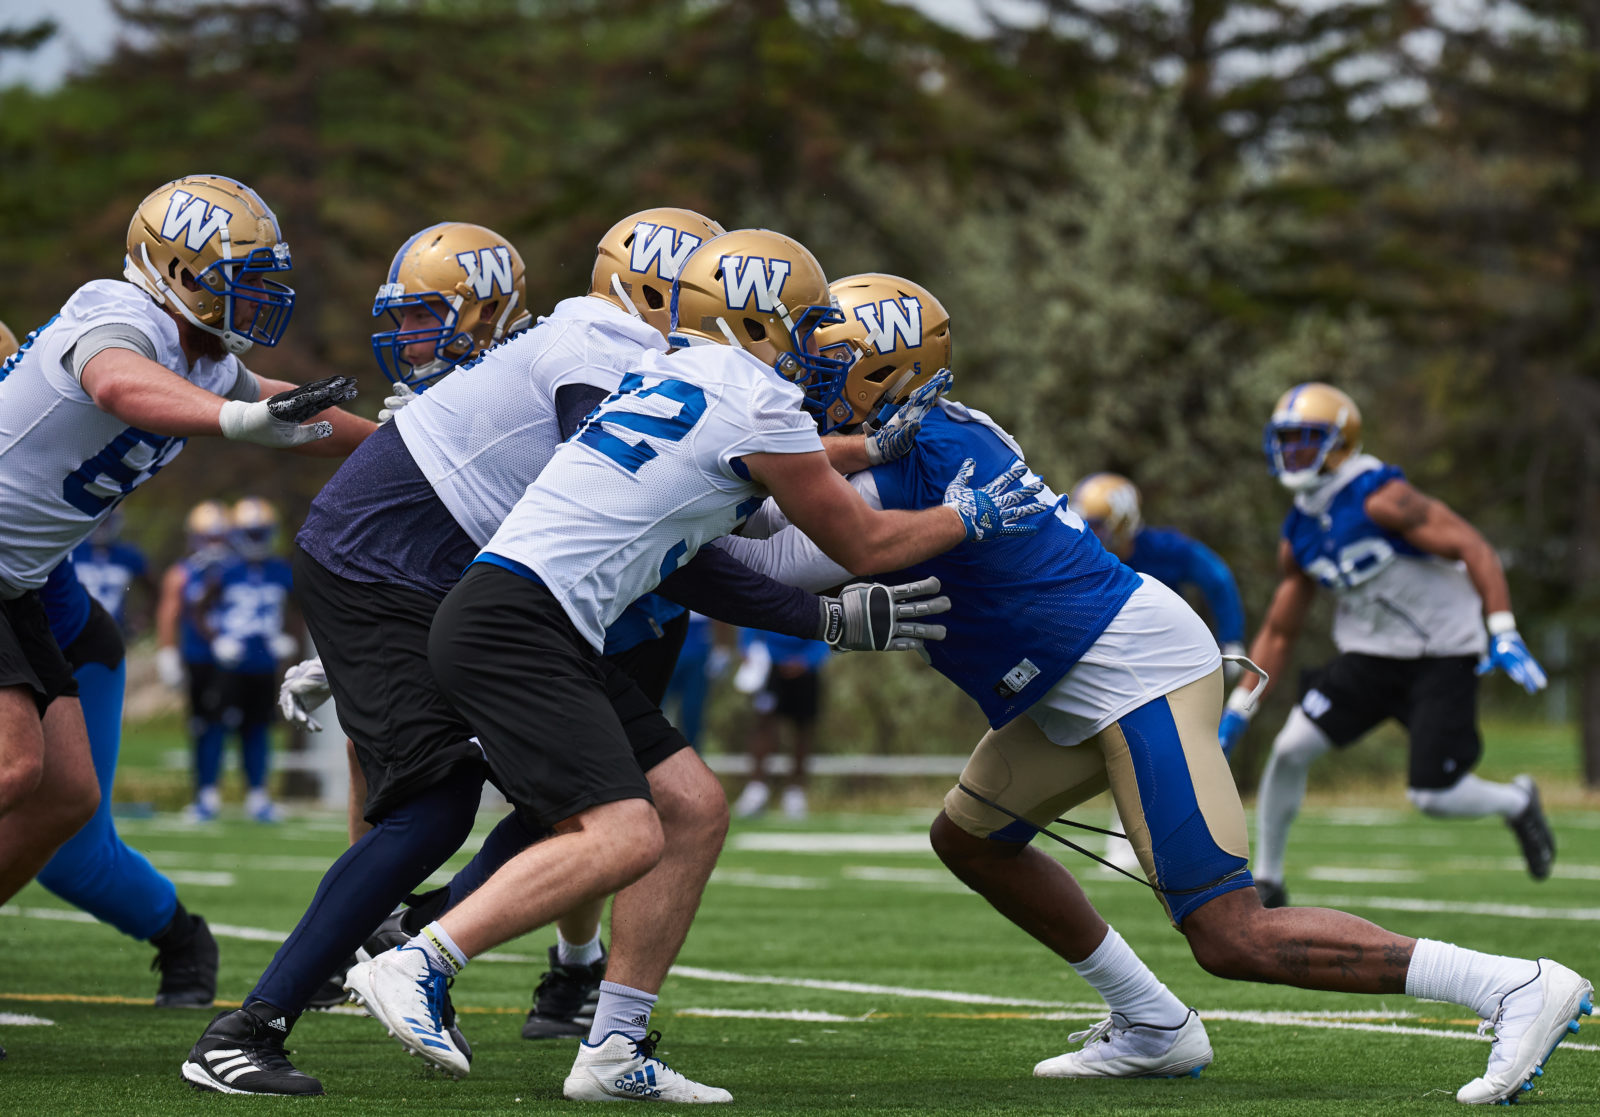 Battle in the trenches - Winnipeg Blue Bombers